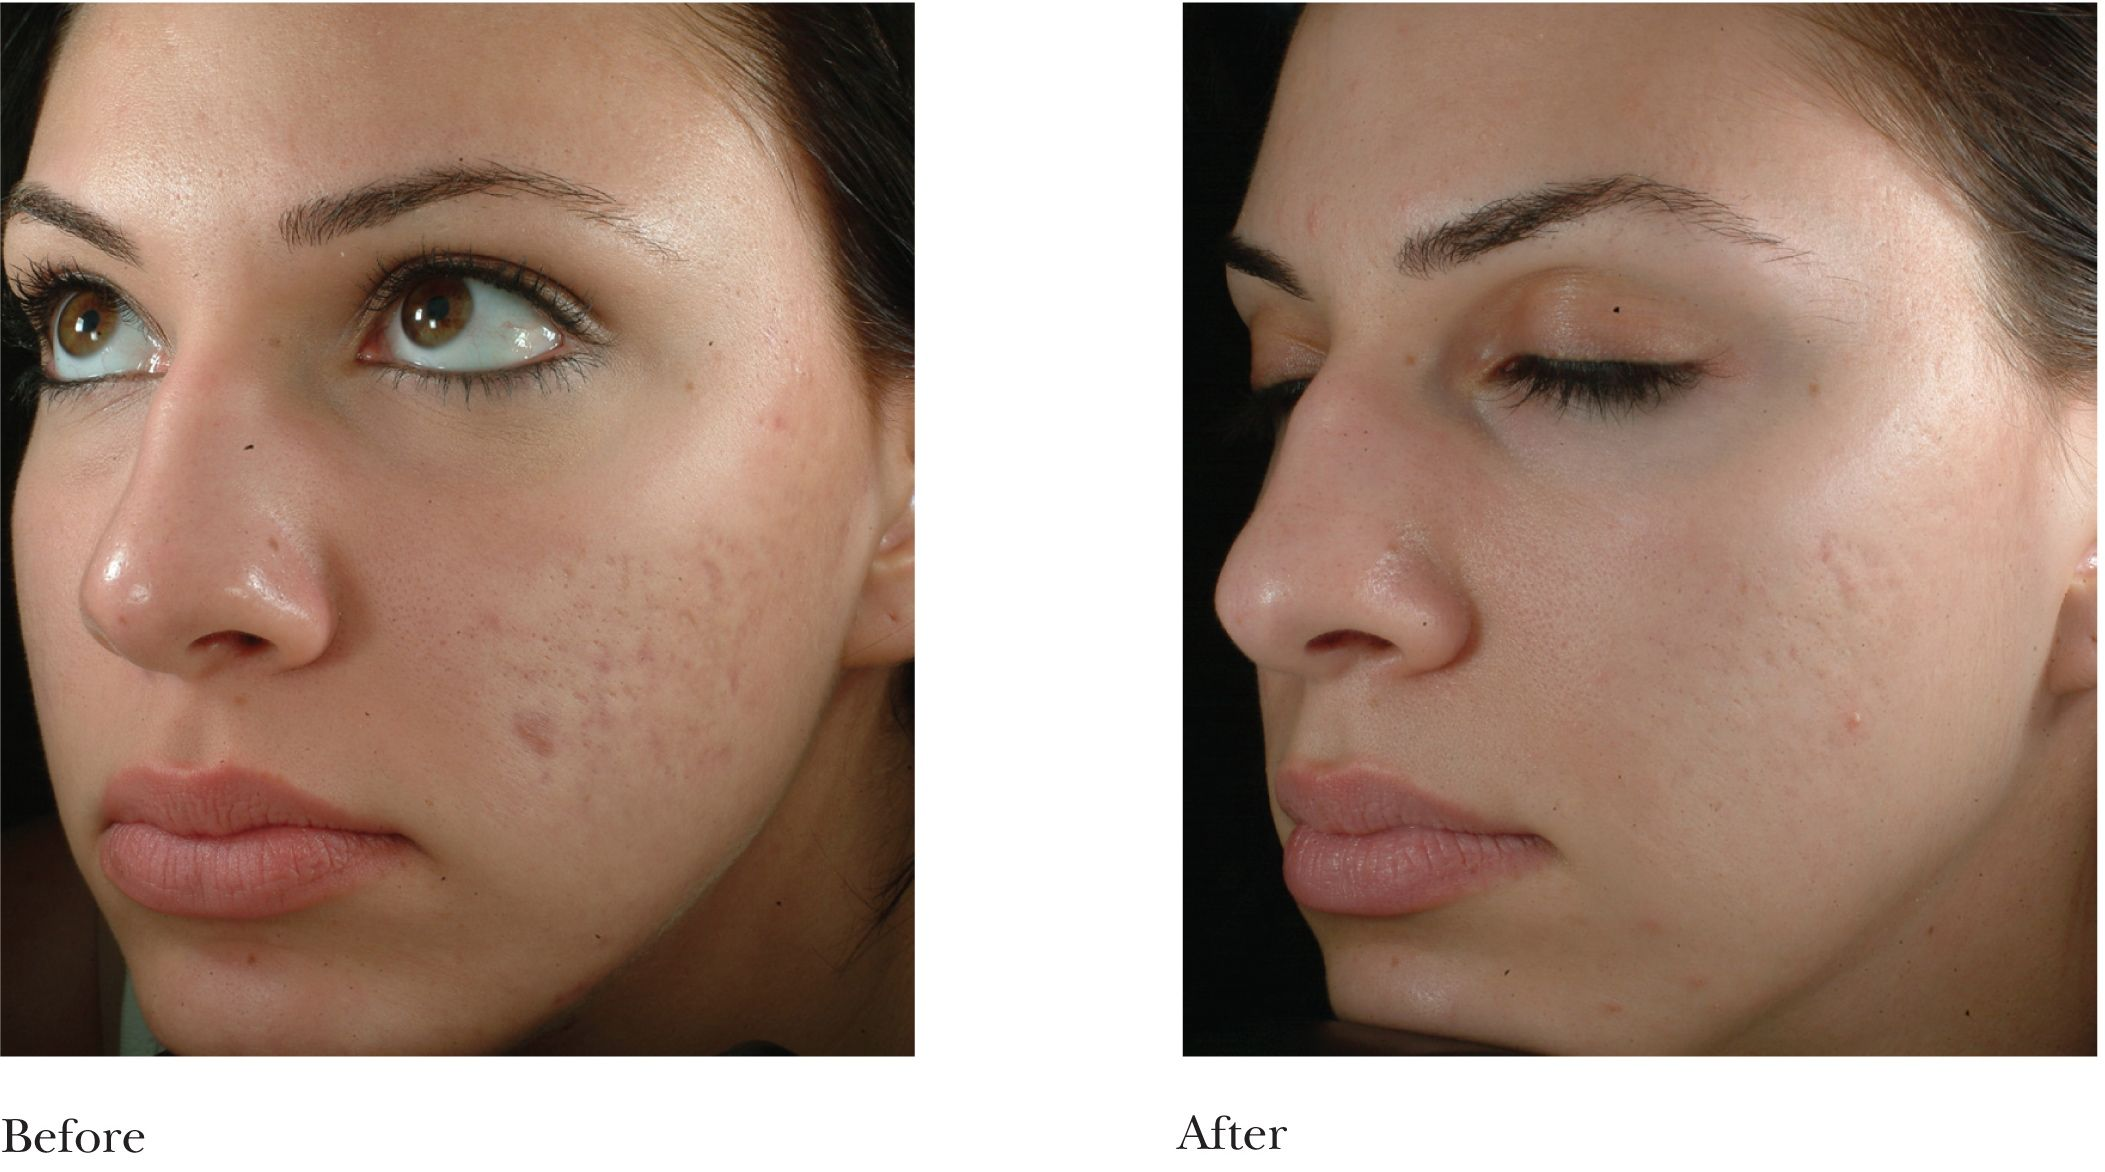 Microdermabrasion Before And After 3 Jpg 2105 1172 Microdermabrasion Microdermabrasion Benefits Acne Facial Treatment